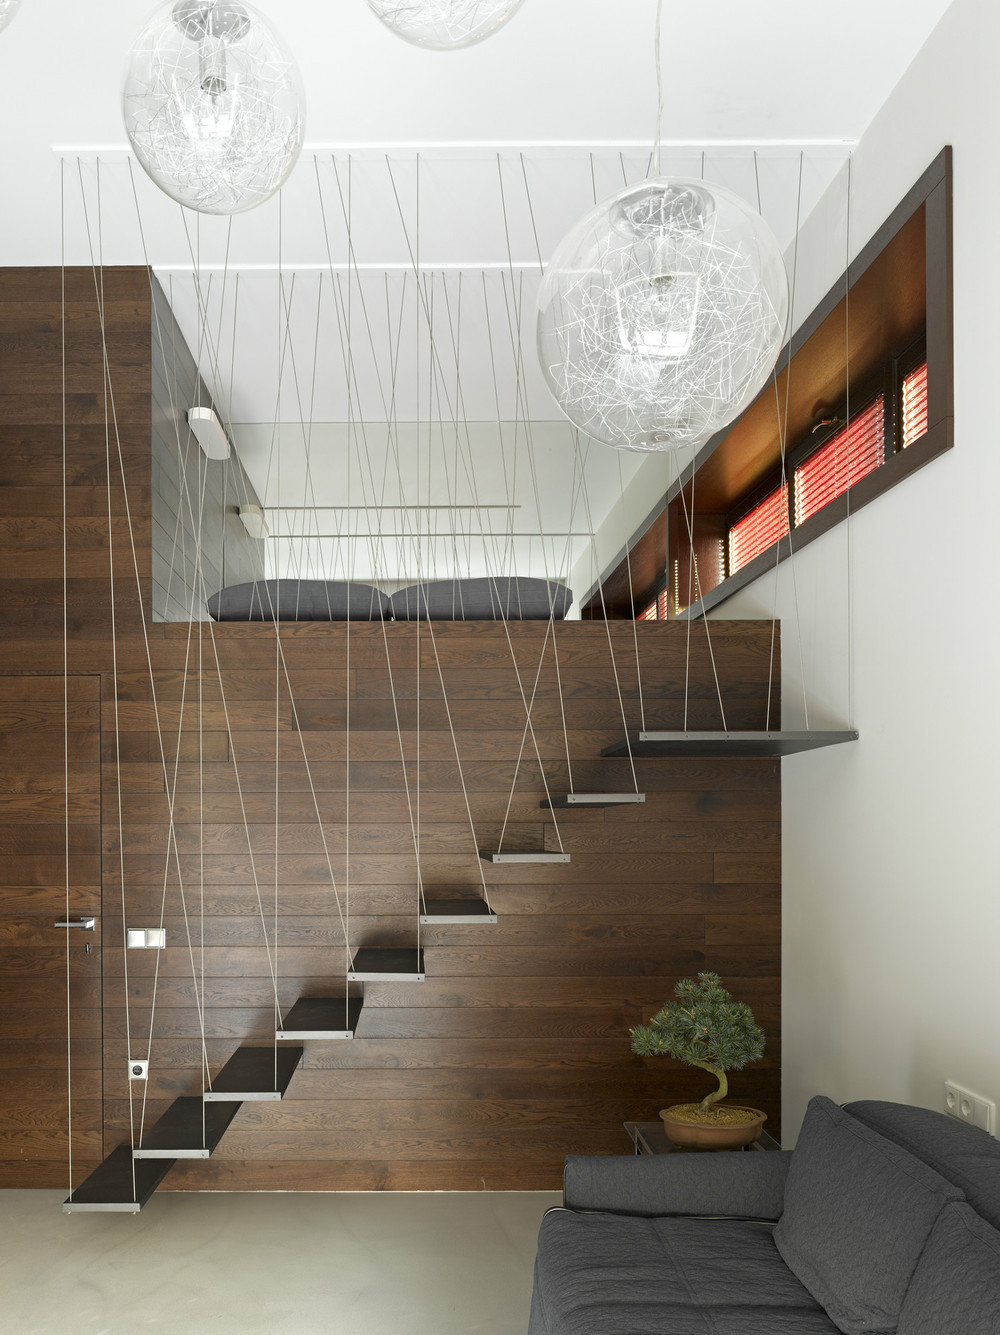 Luxury Lofted Bed Design - Invisible doors turn a home into an artistic feat of design